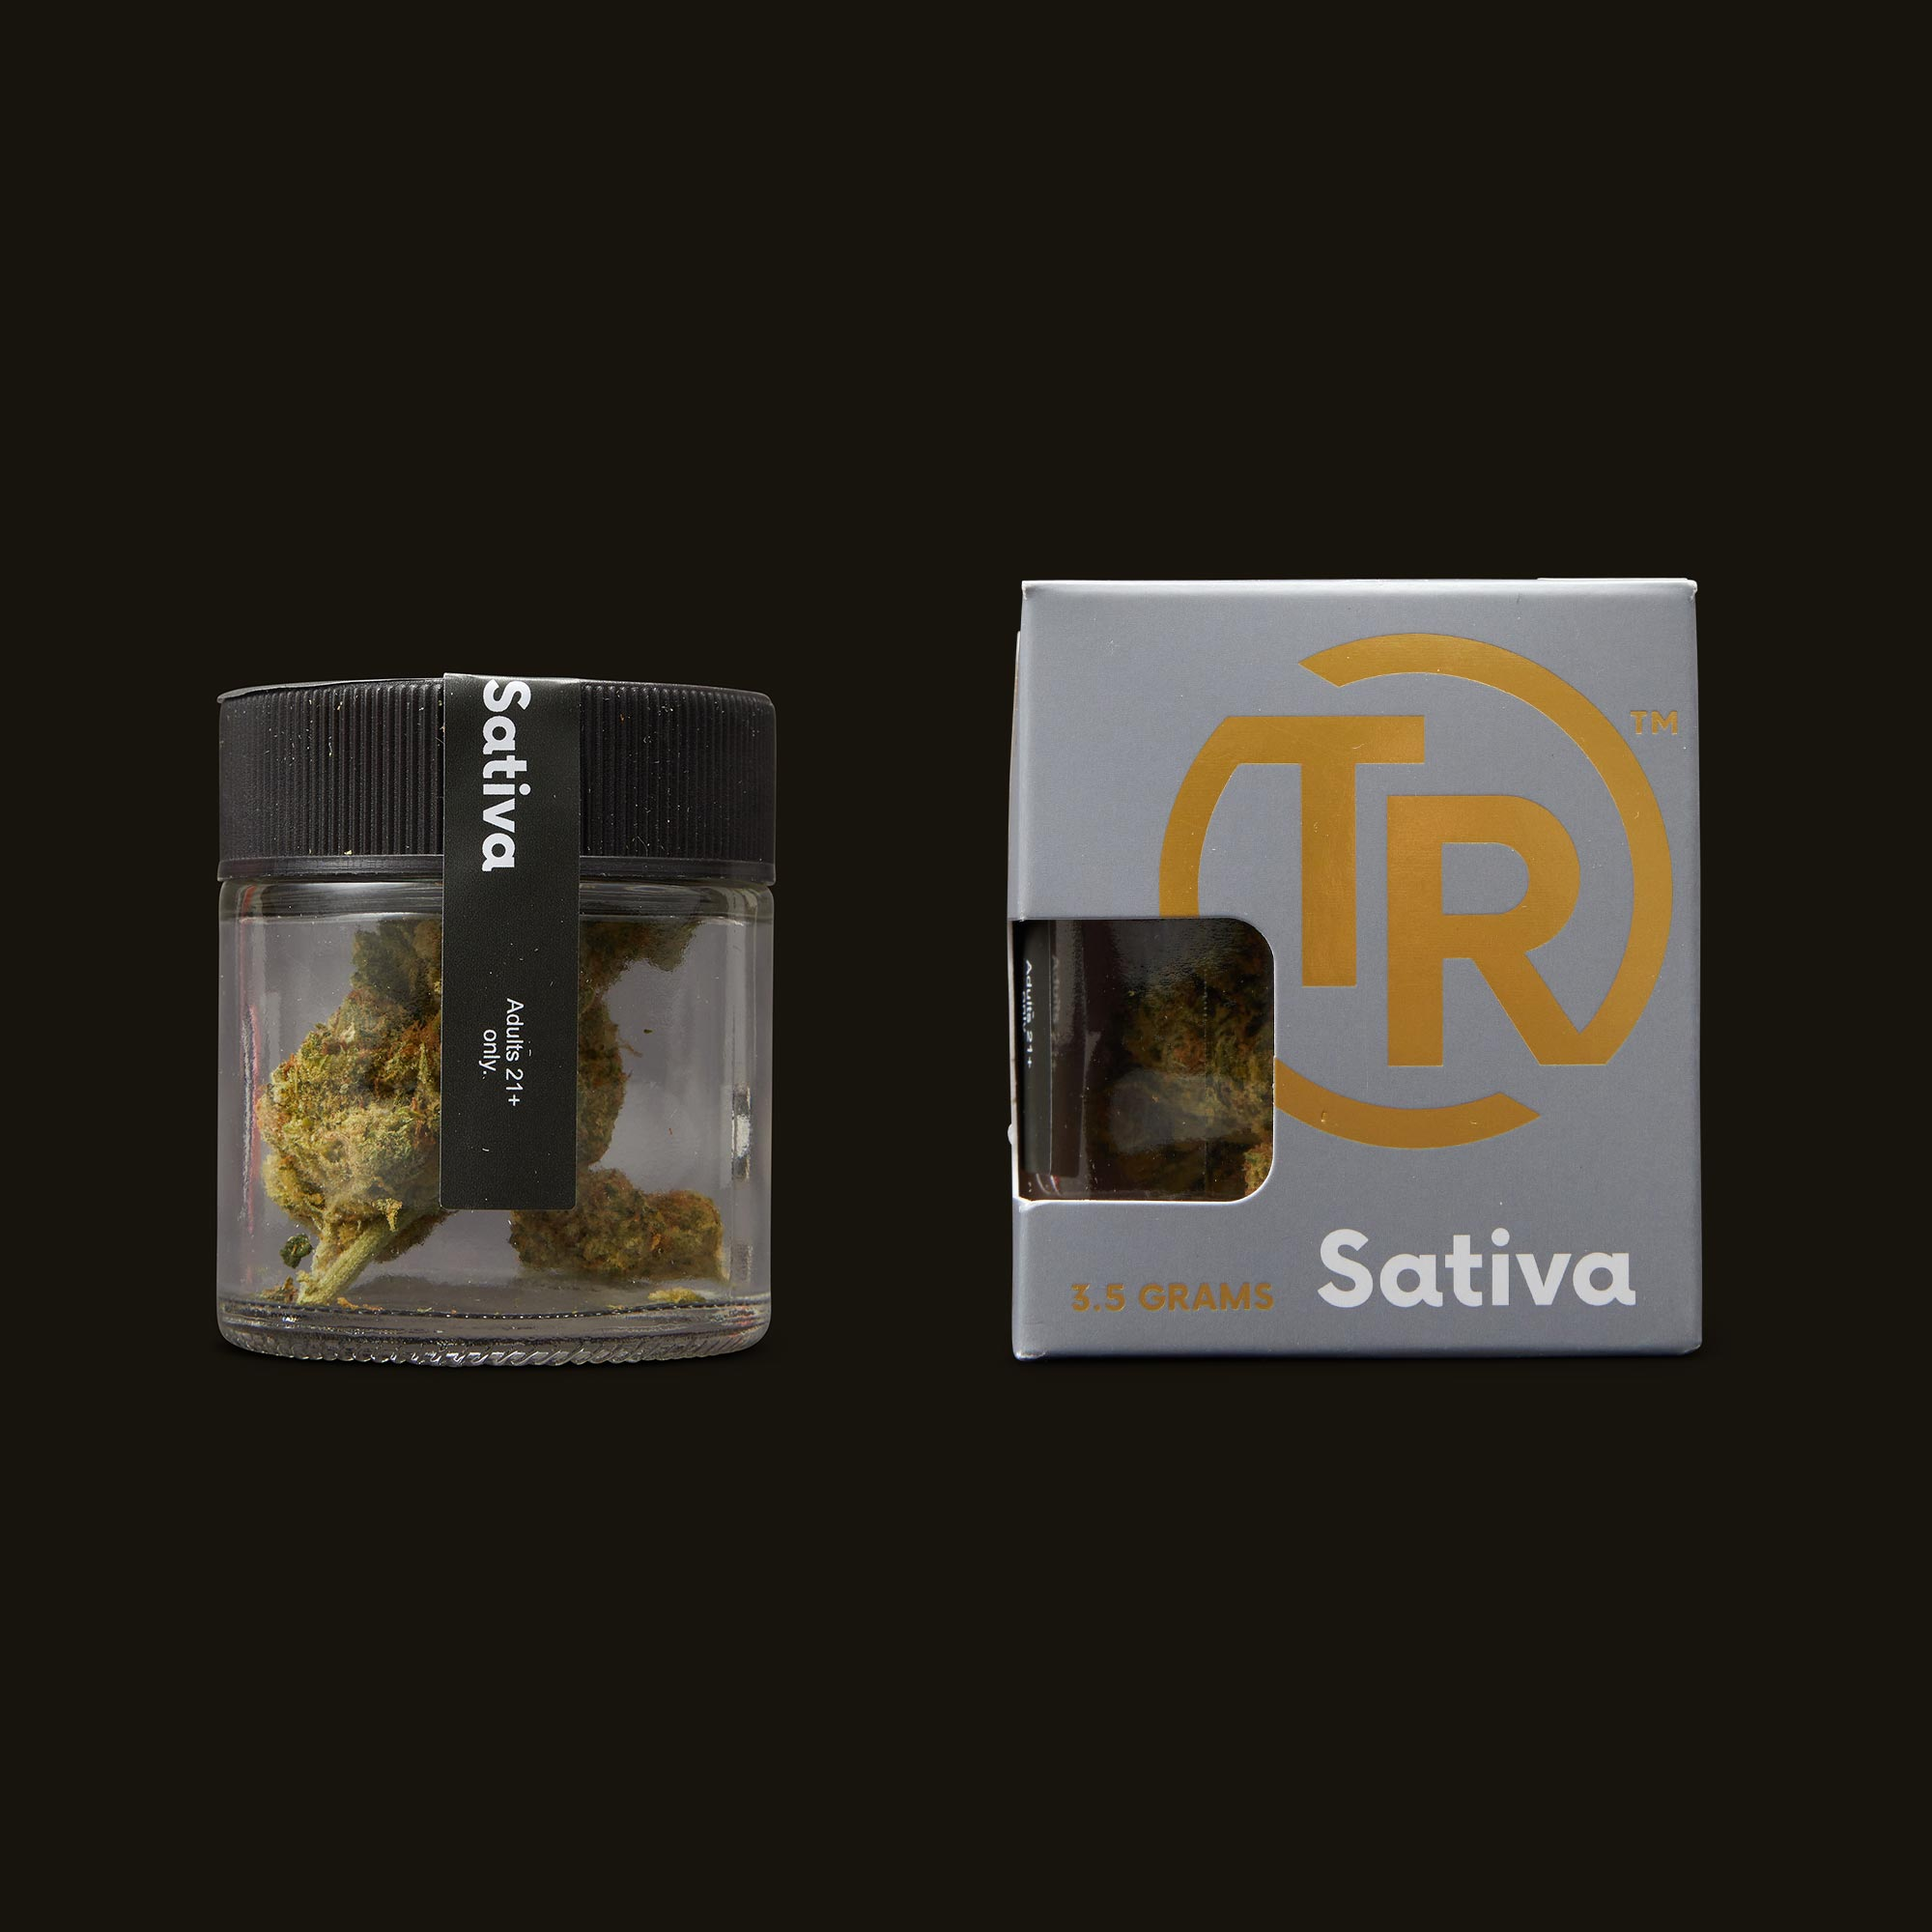 Tyson Ranch Sour Diesel Jar and Packaging